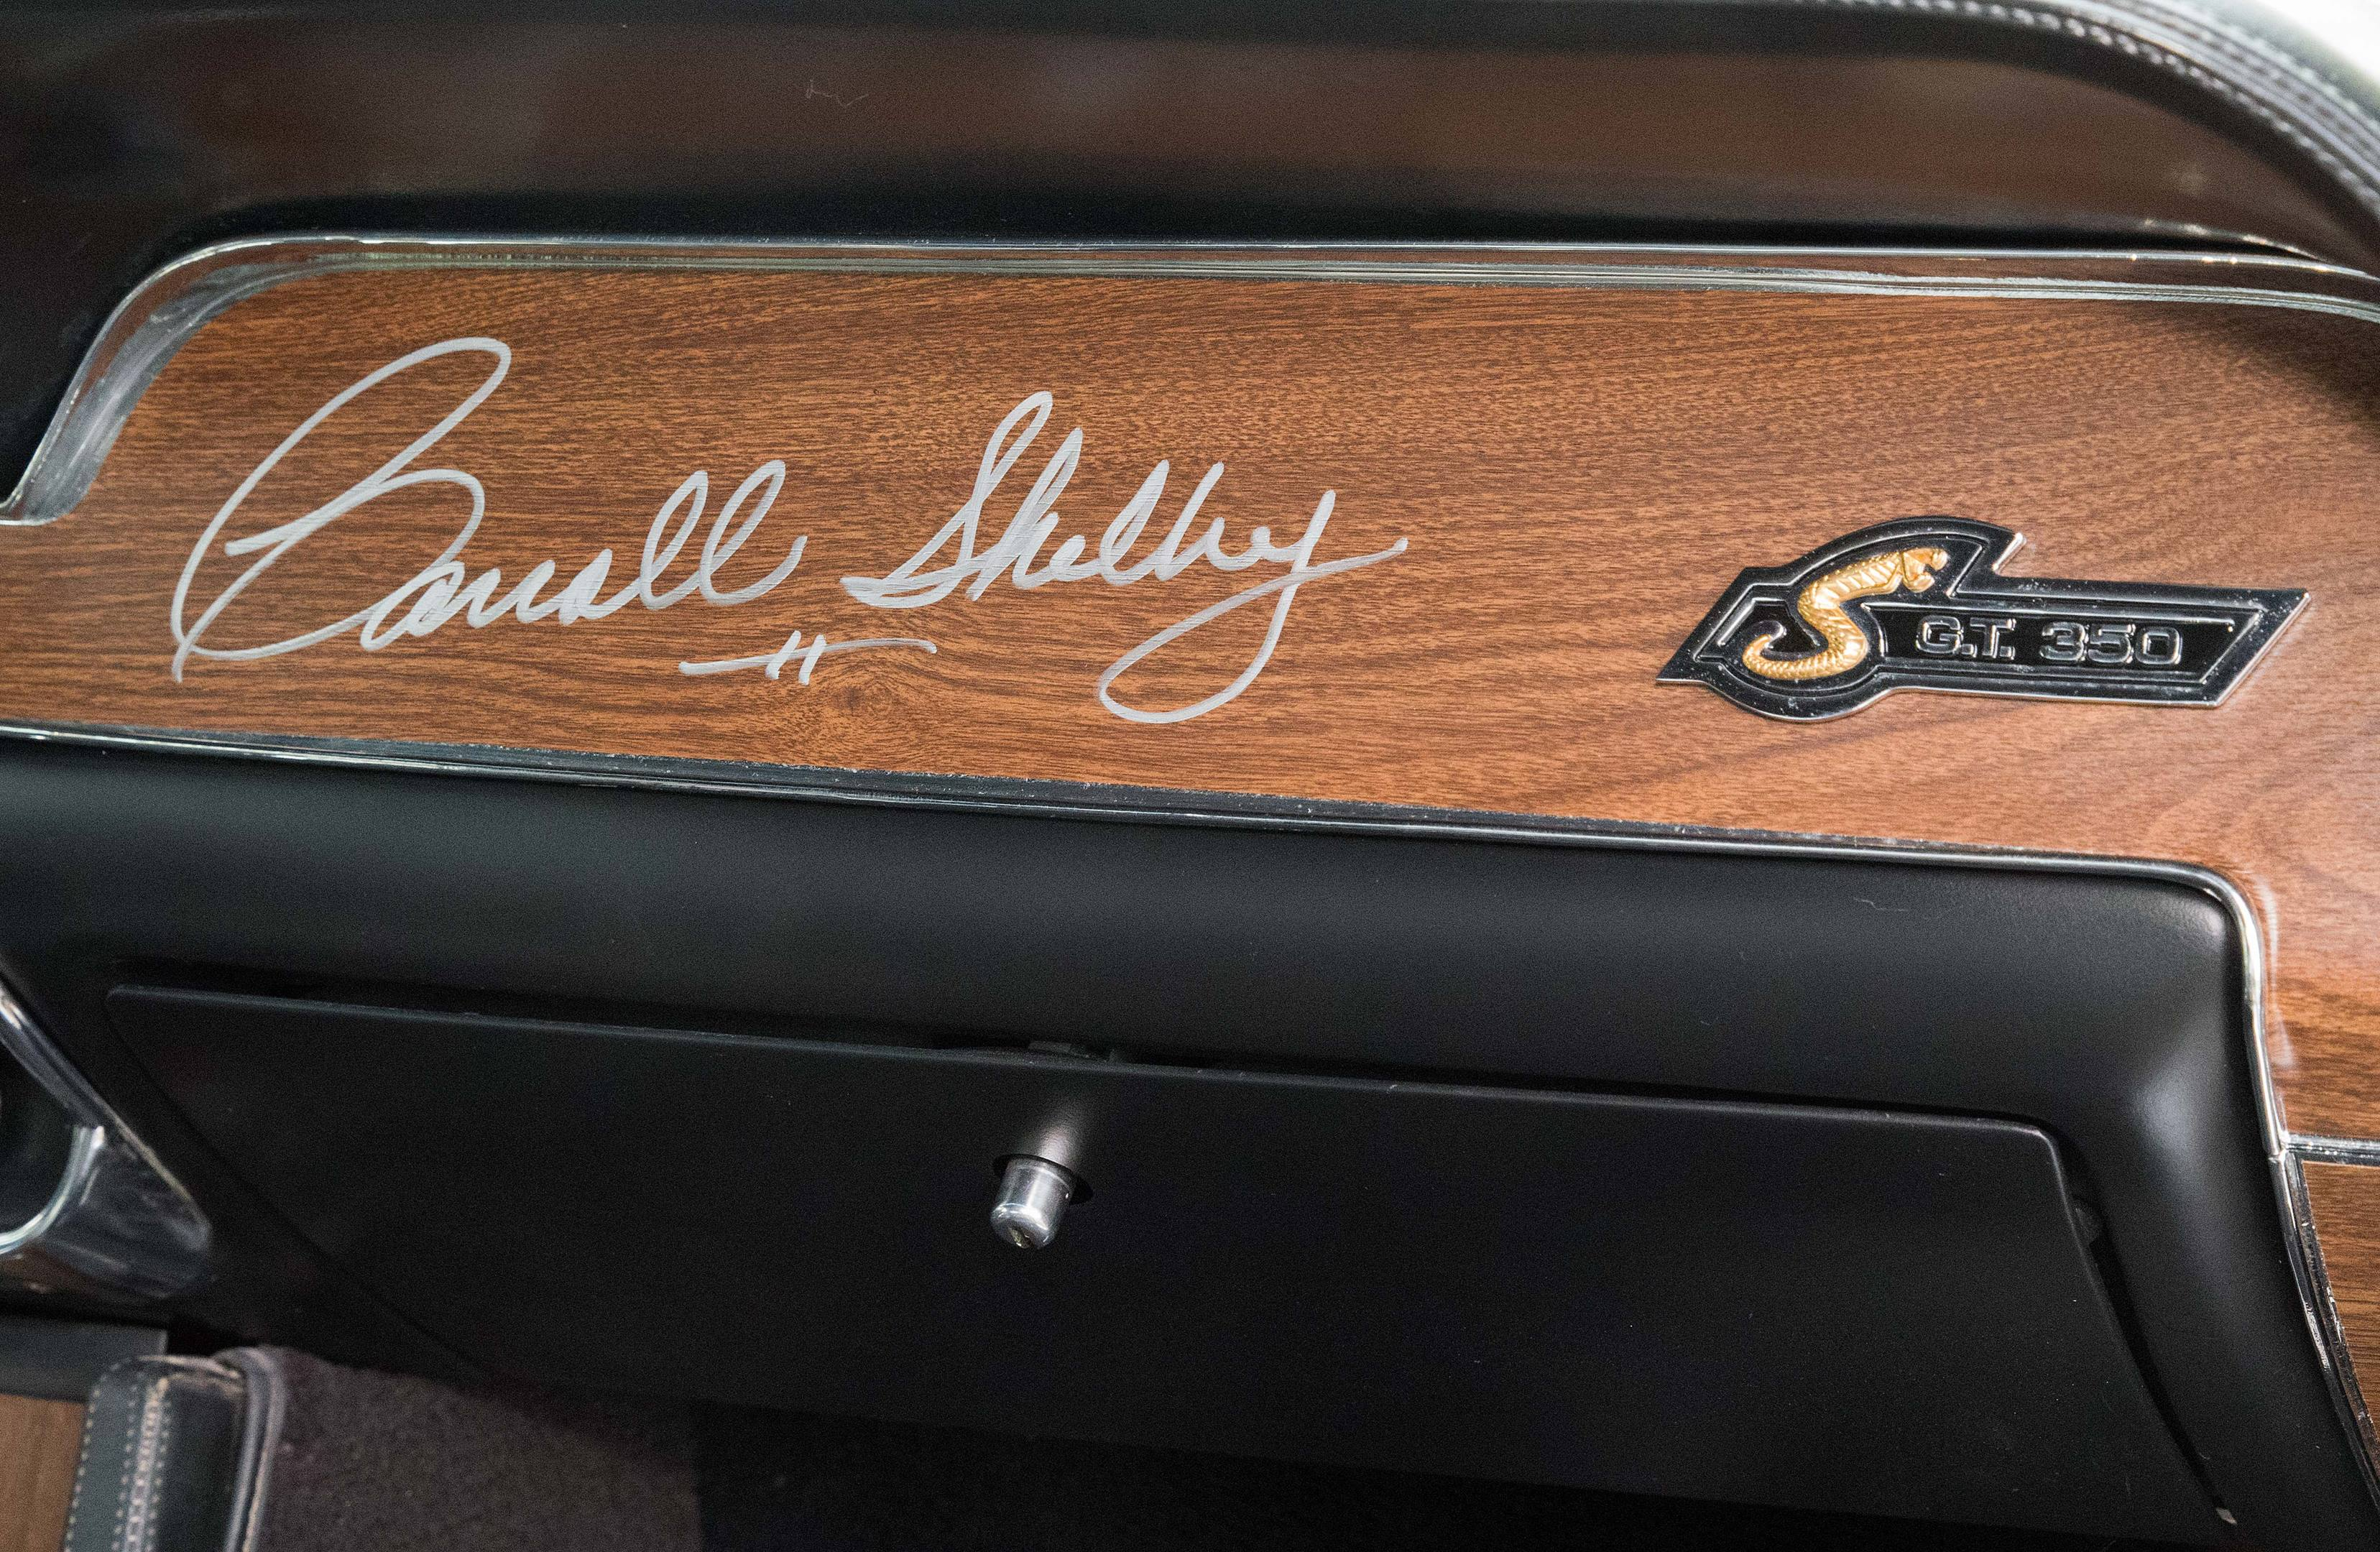 Paul Choukourian purchased the Shelby-autographed instrument panel insert. Shelby raised a lot of money for charity selling panels and dash plaques.